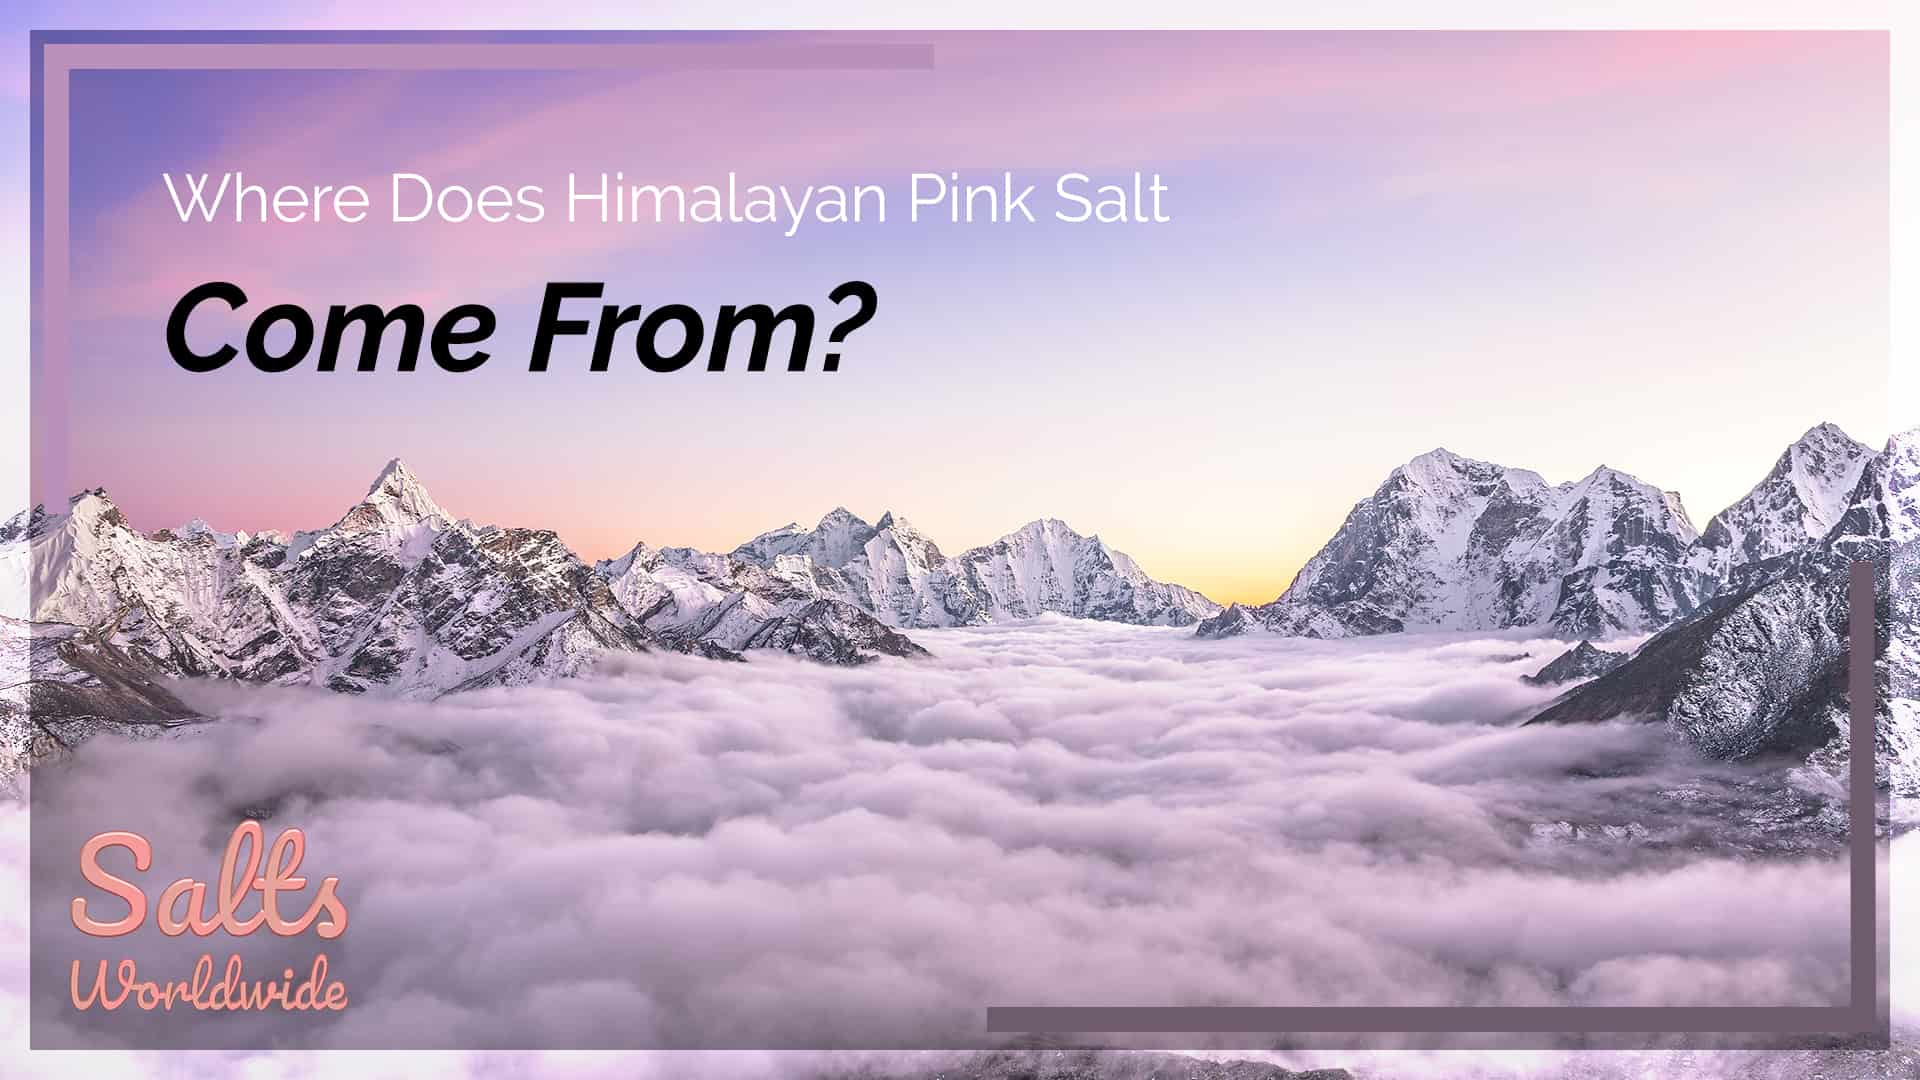 Where Does Himalayan Pink Salt Come From - featured image